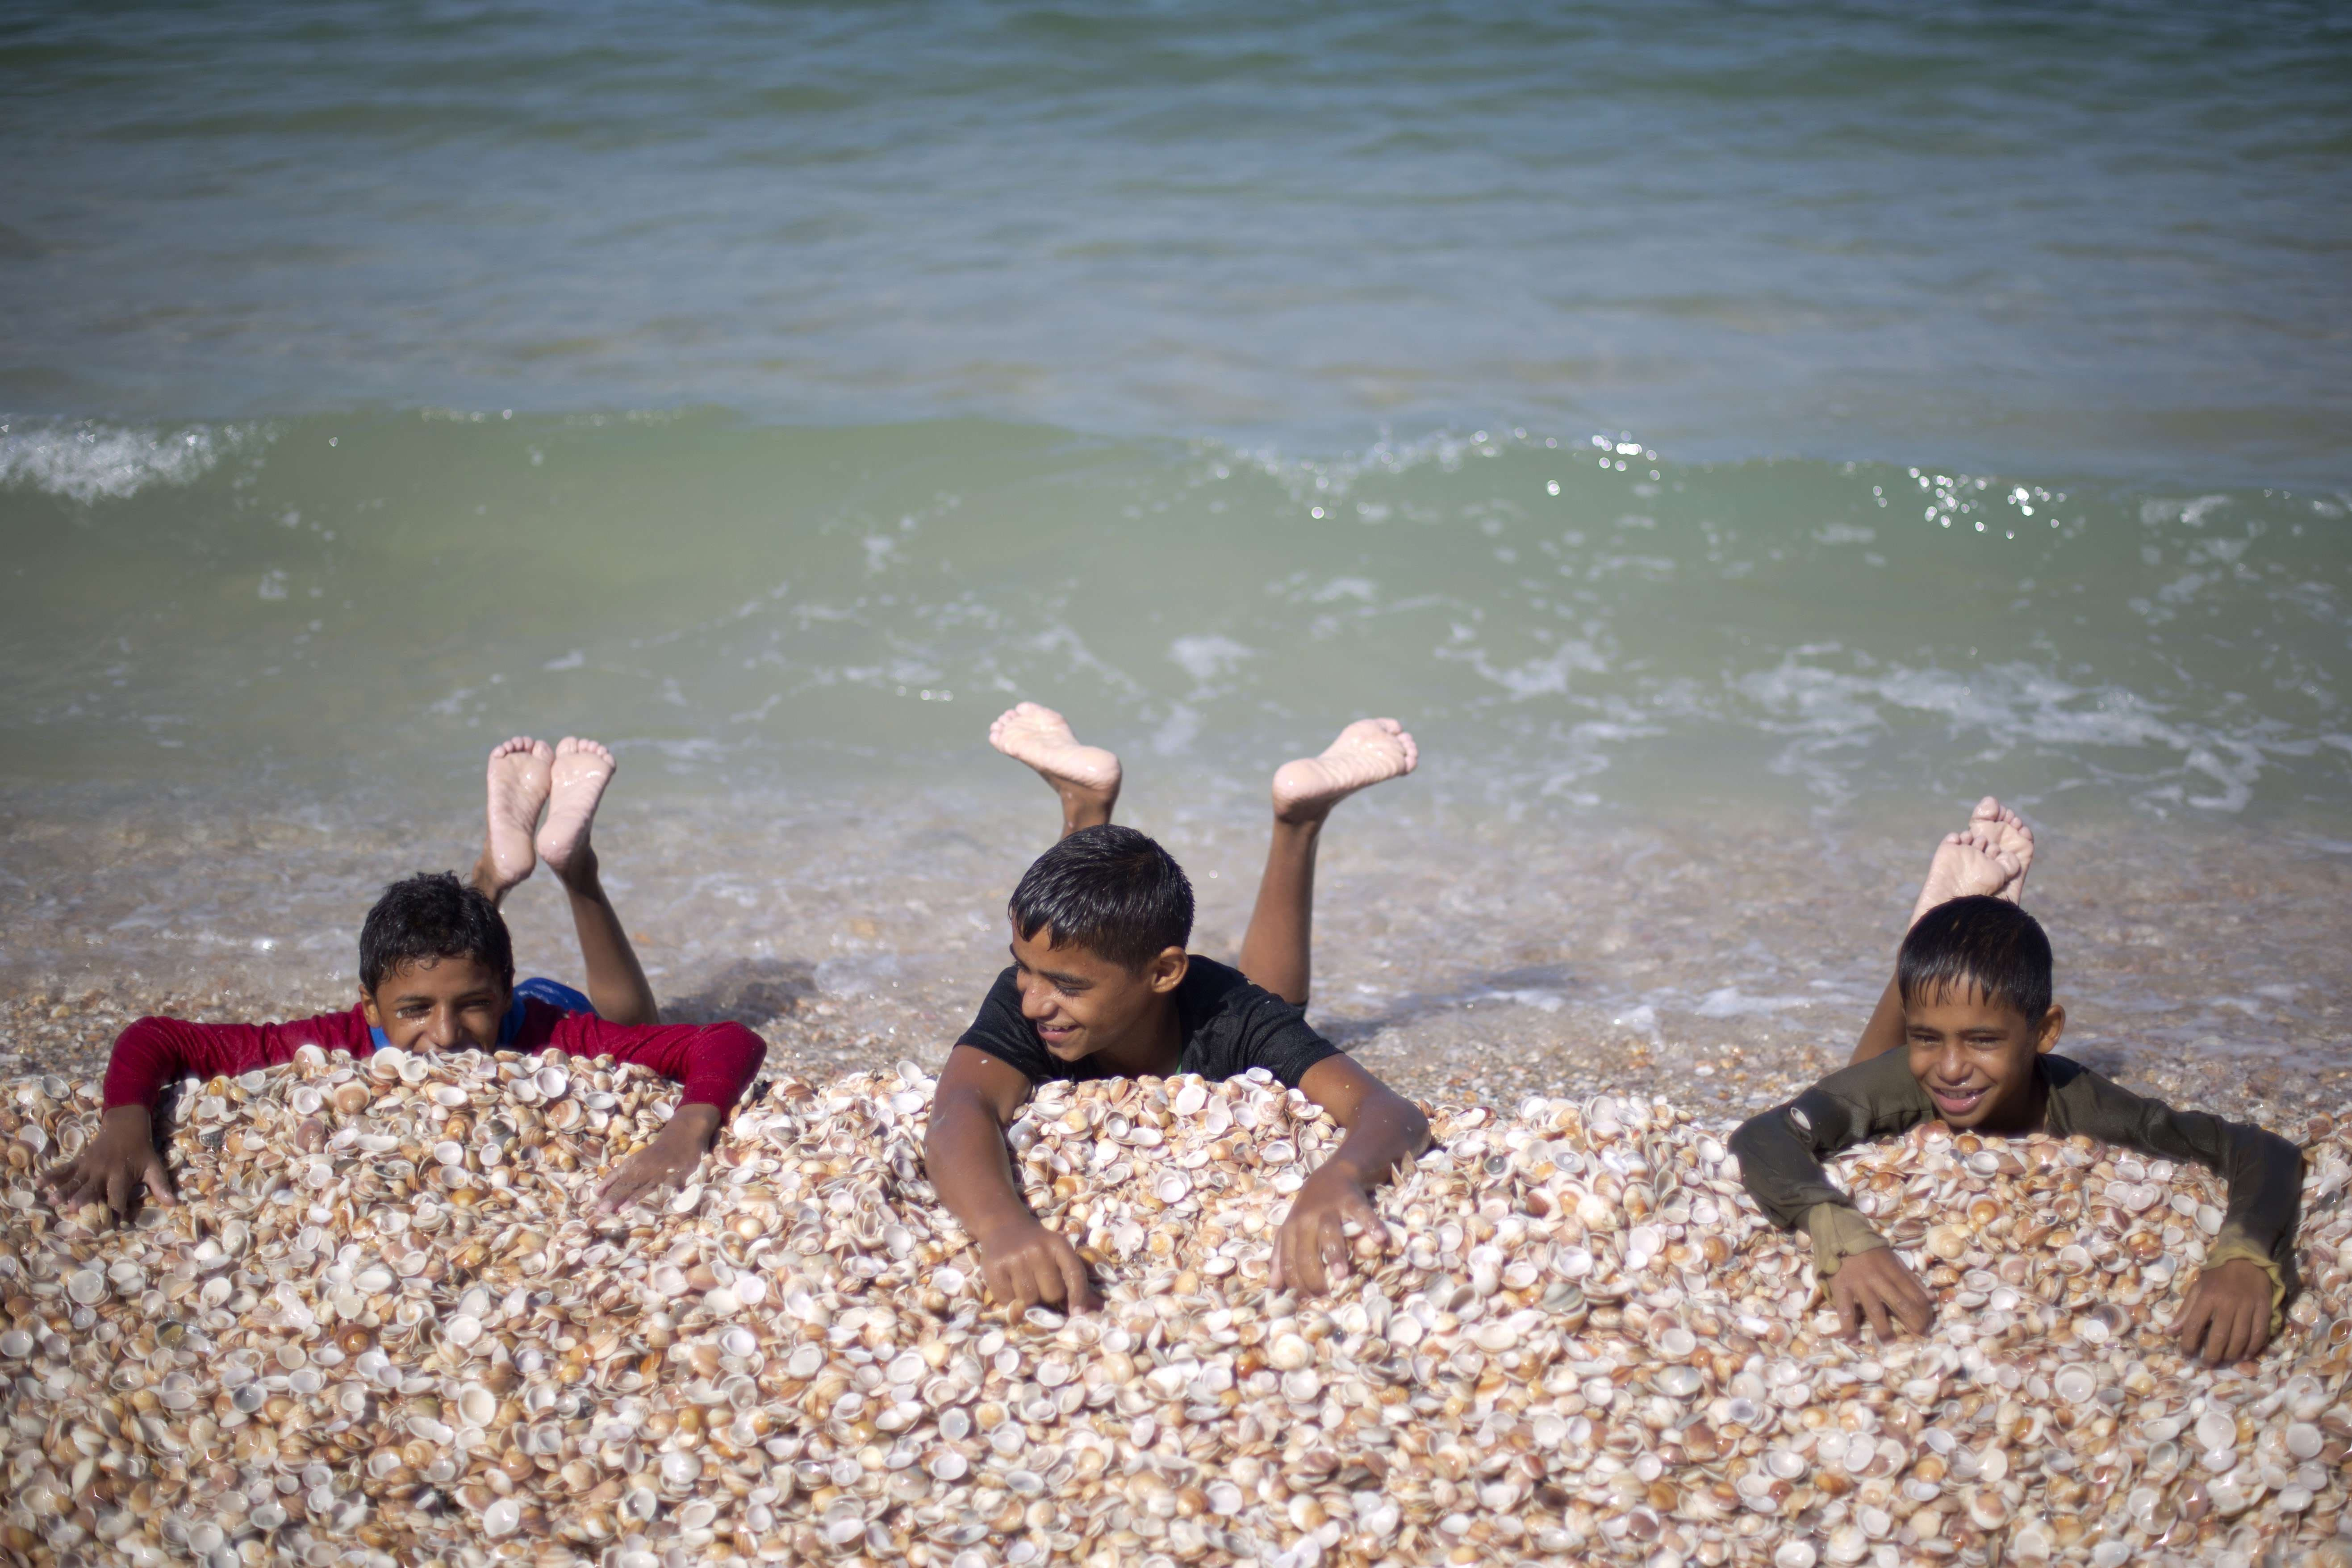 A day at the beach in Gaza